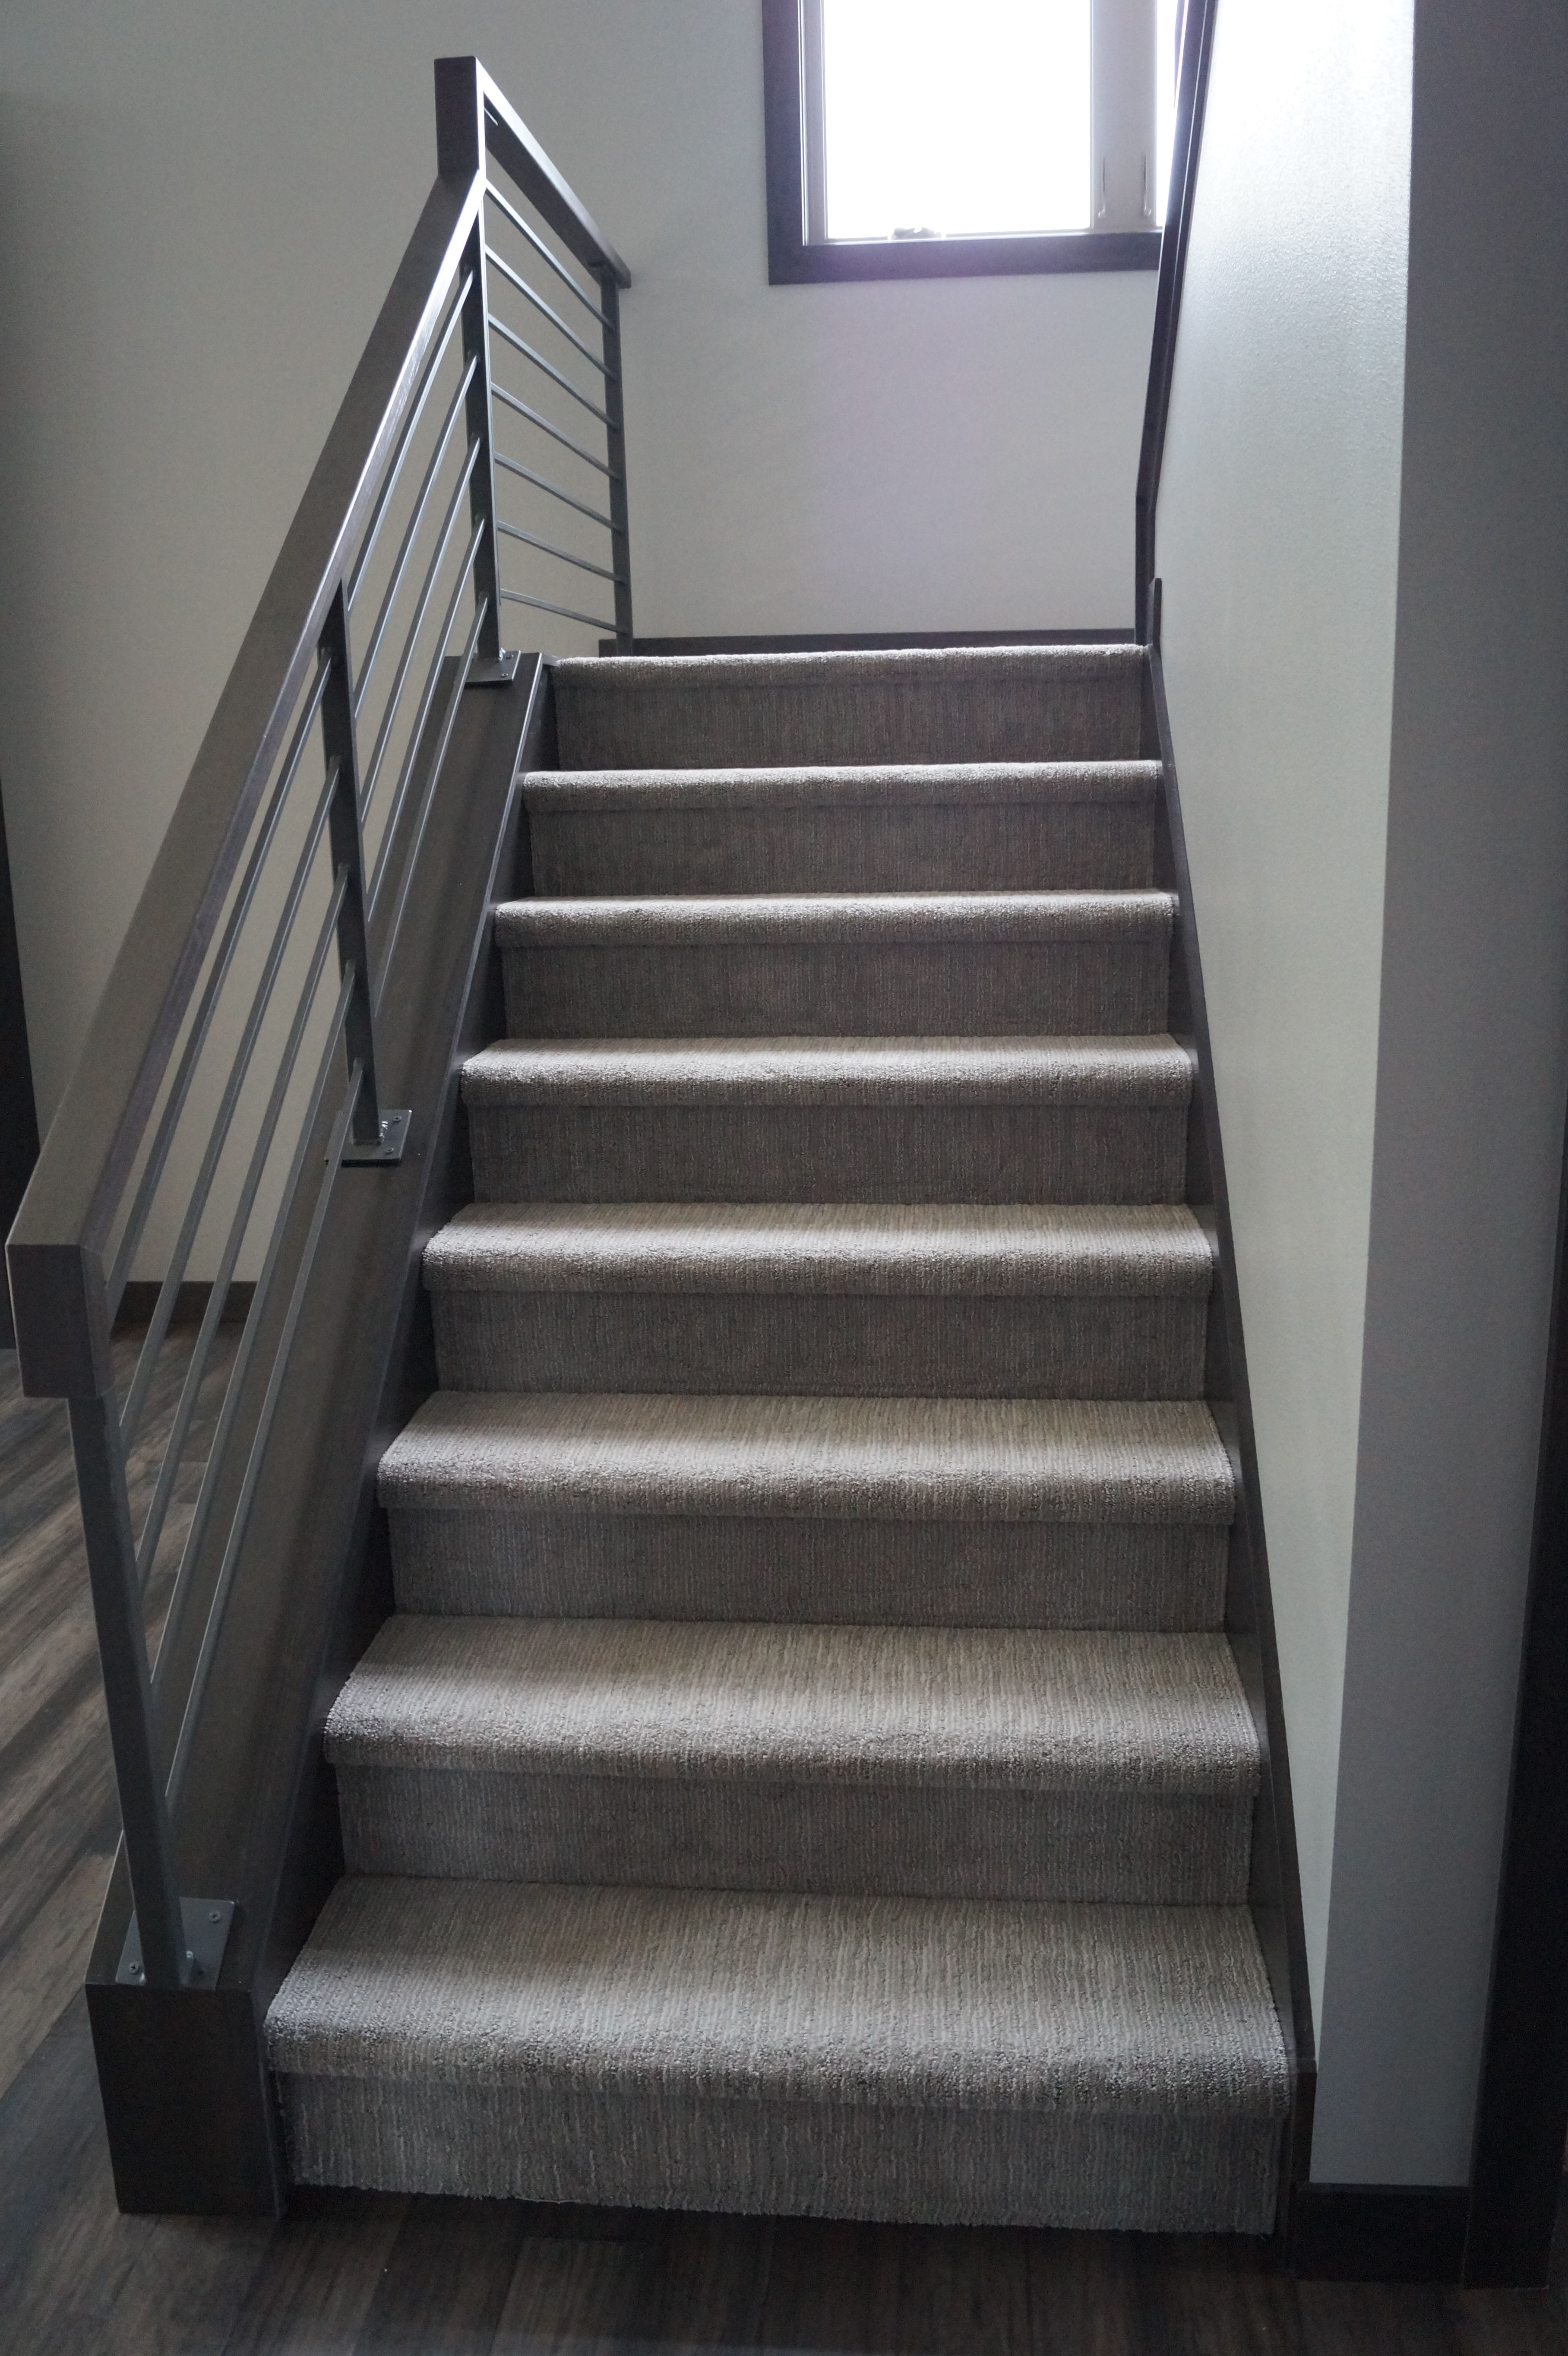 patterned carpeted stairs with custom metal railing